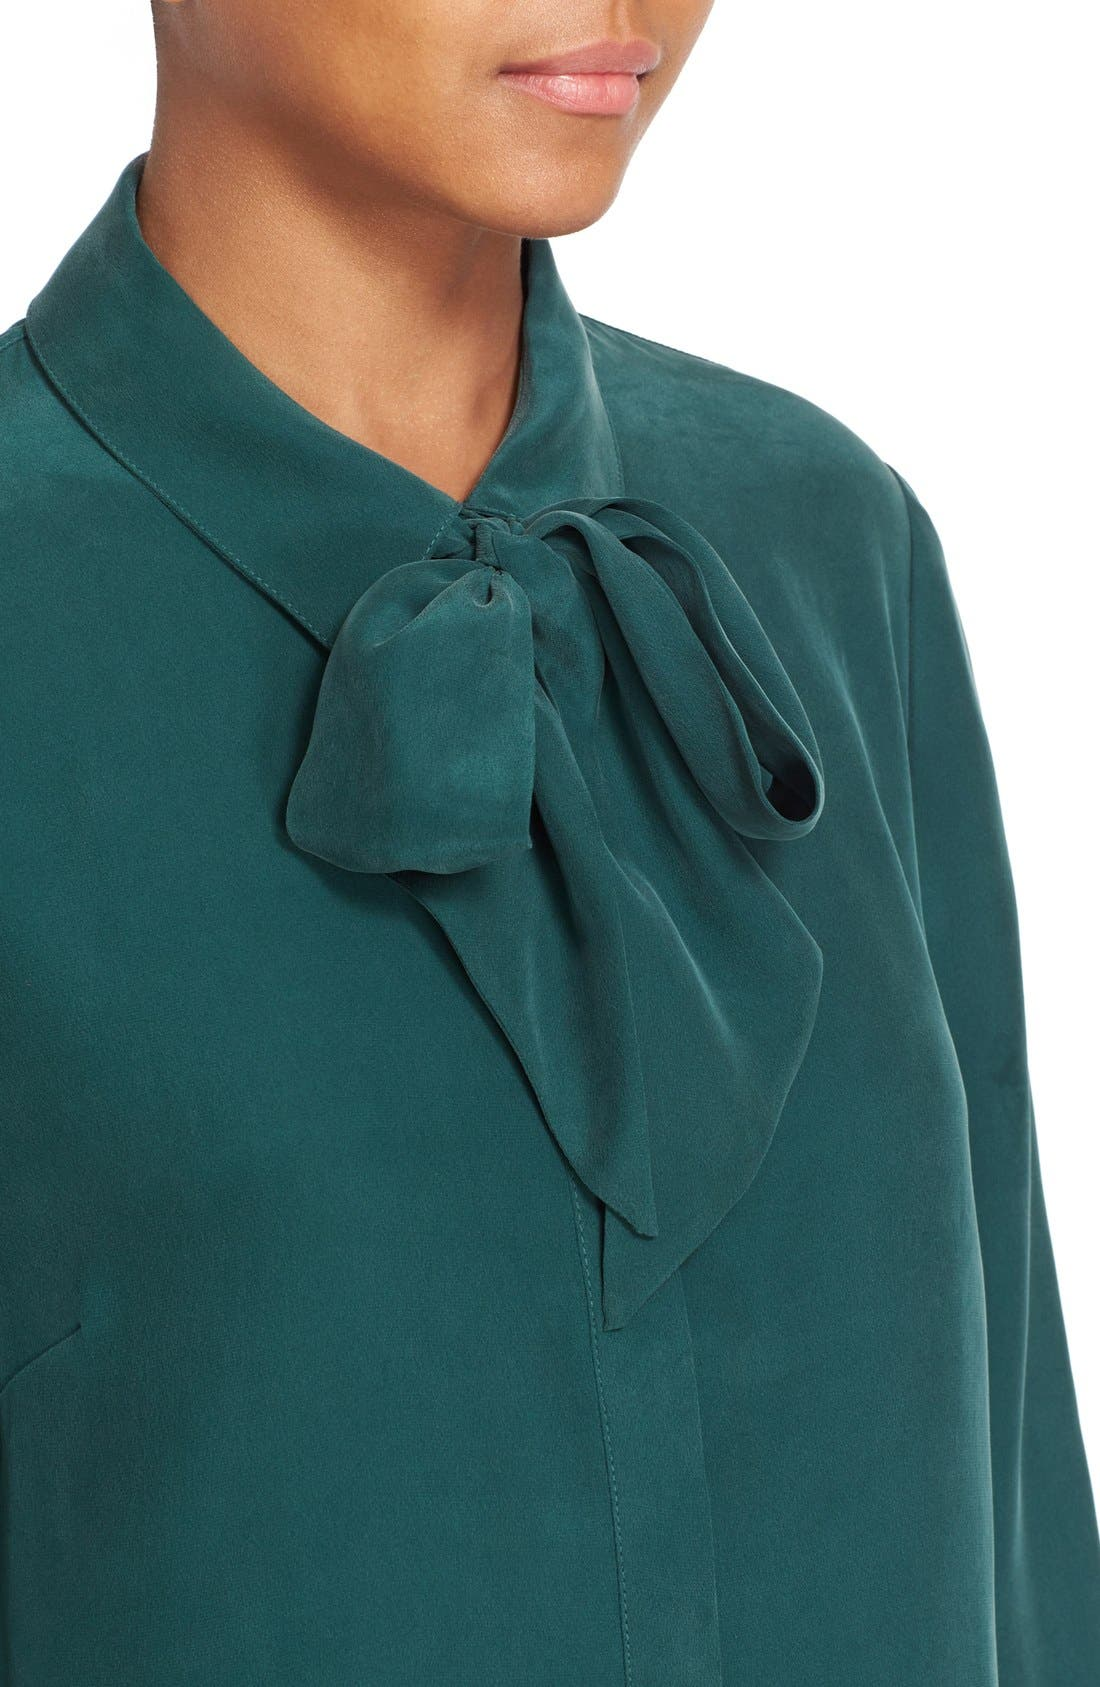 Alternate Image 4  - FRAME Tie Neck Silk Blouse (Nordstrom Exclusive)